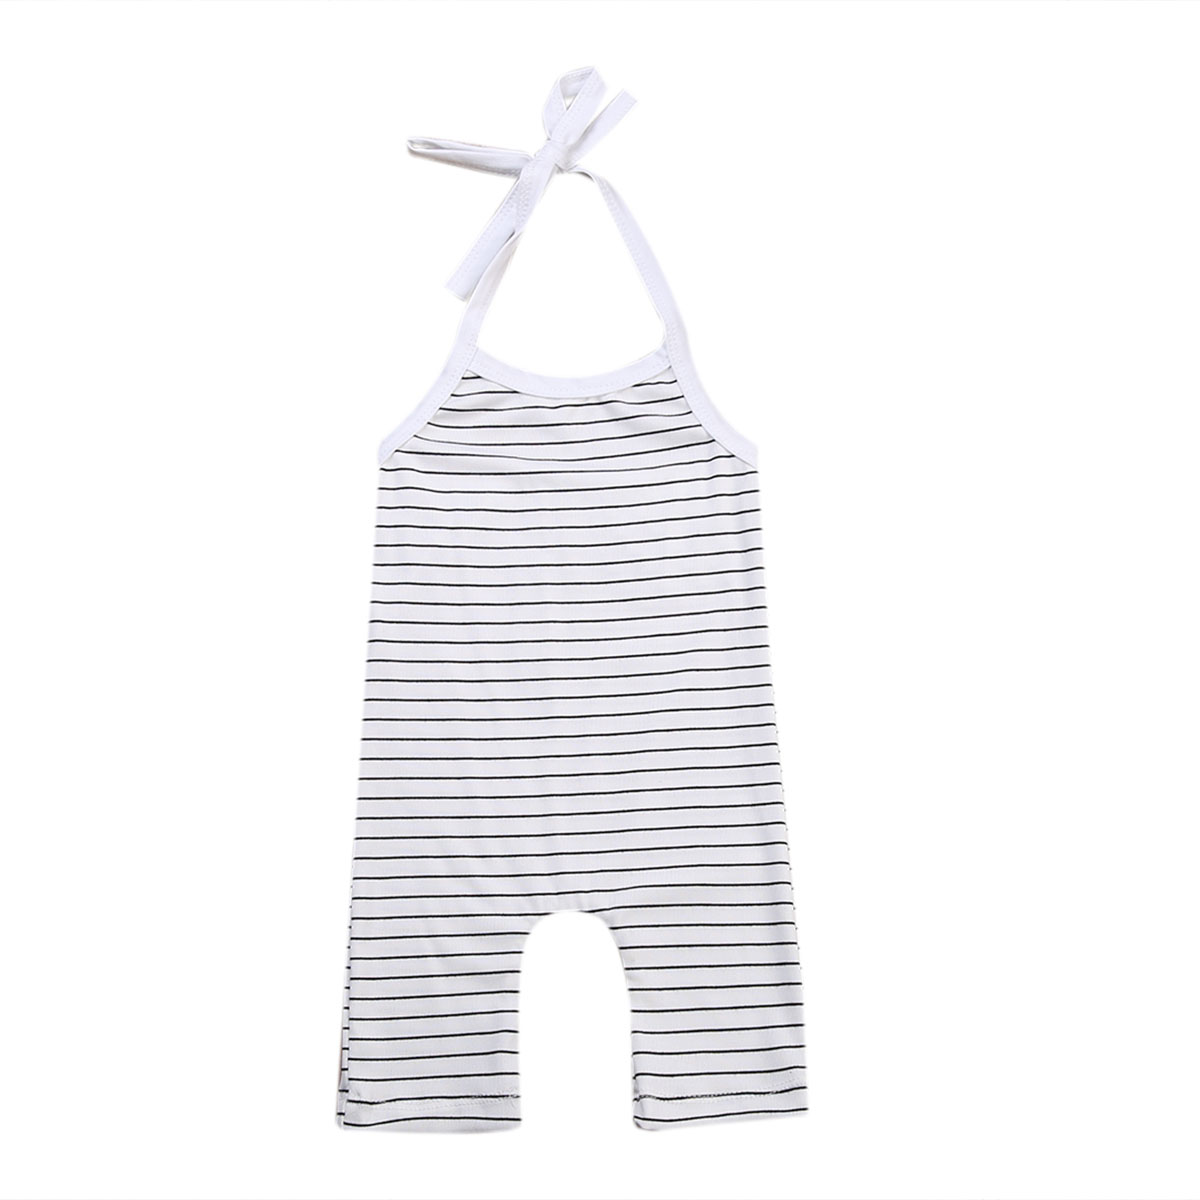 Newborn Baby Girls Boys Stripe Romper Jumpsuit Children Clothing Summer Boy Girl Costume Sleeveless Clothes Outfits Belt baby rompers one piece newborn toddler outfits baby boys clothes little girl jumpsuit kids costume baby clothing roupas infantil